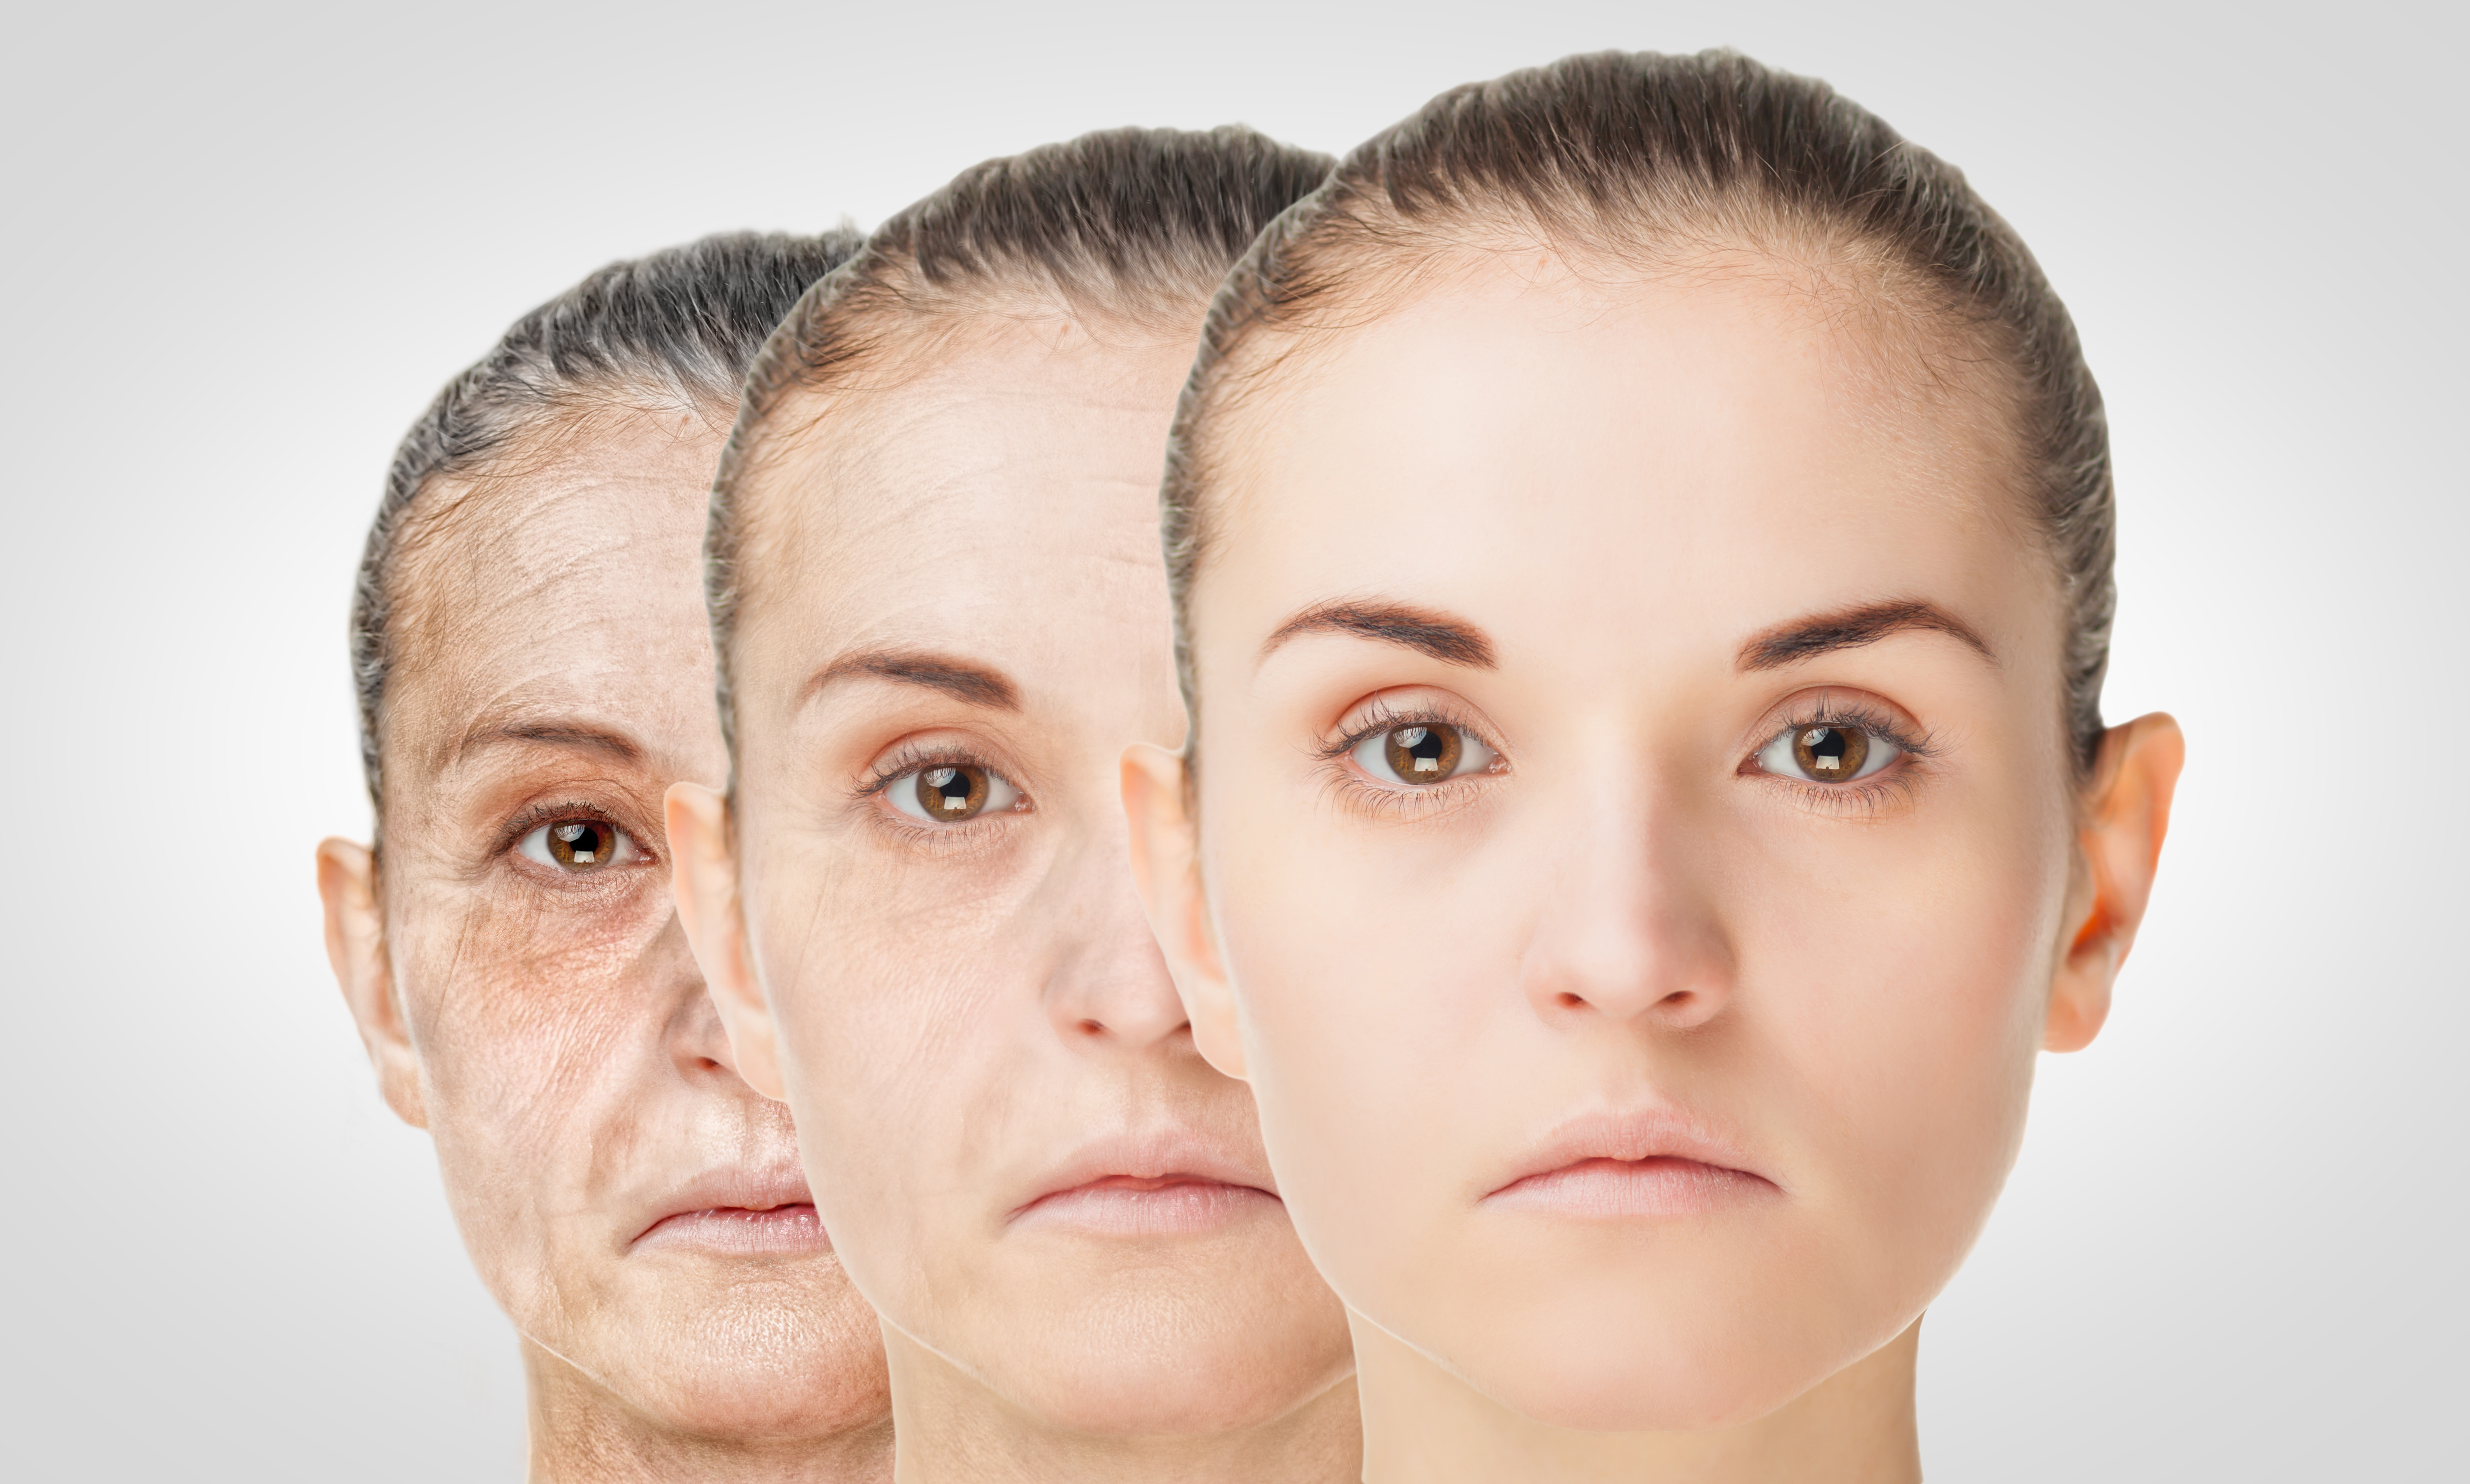 Slow down aging naturally